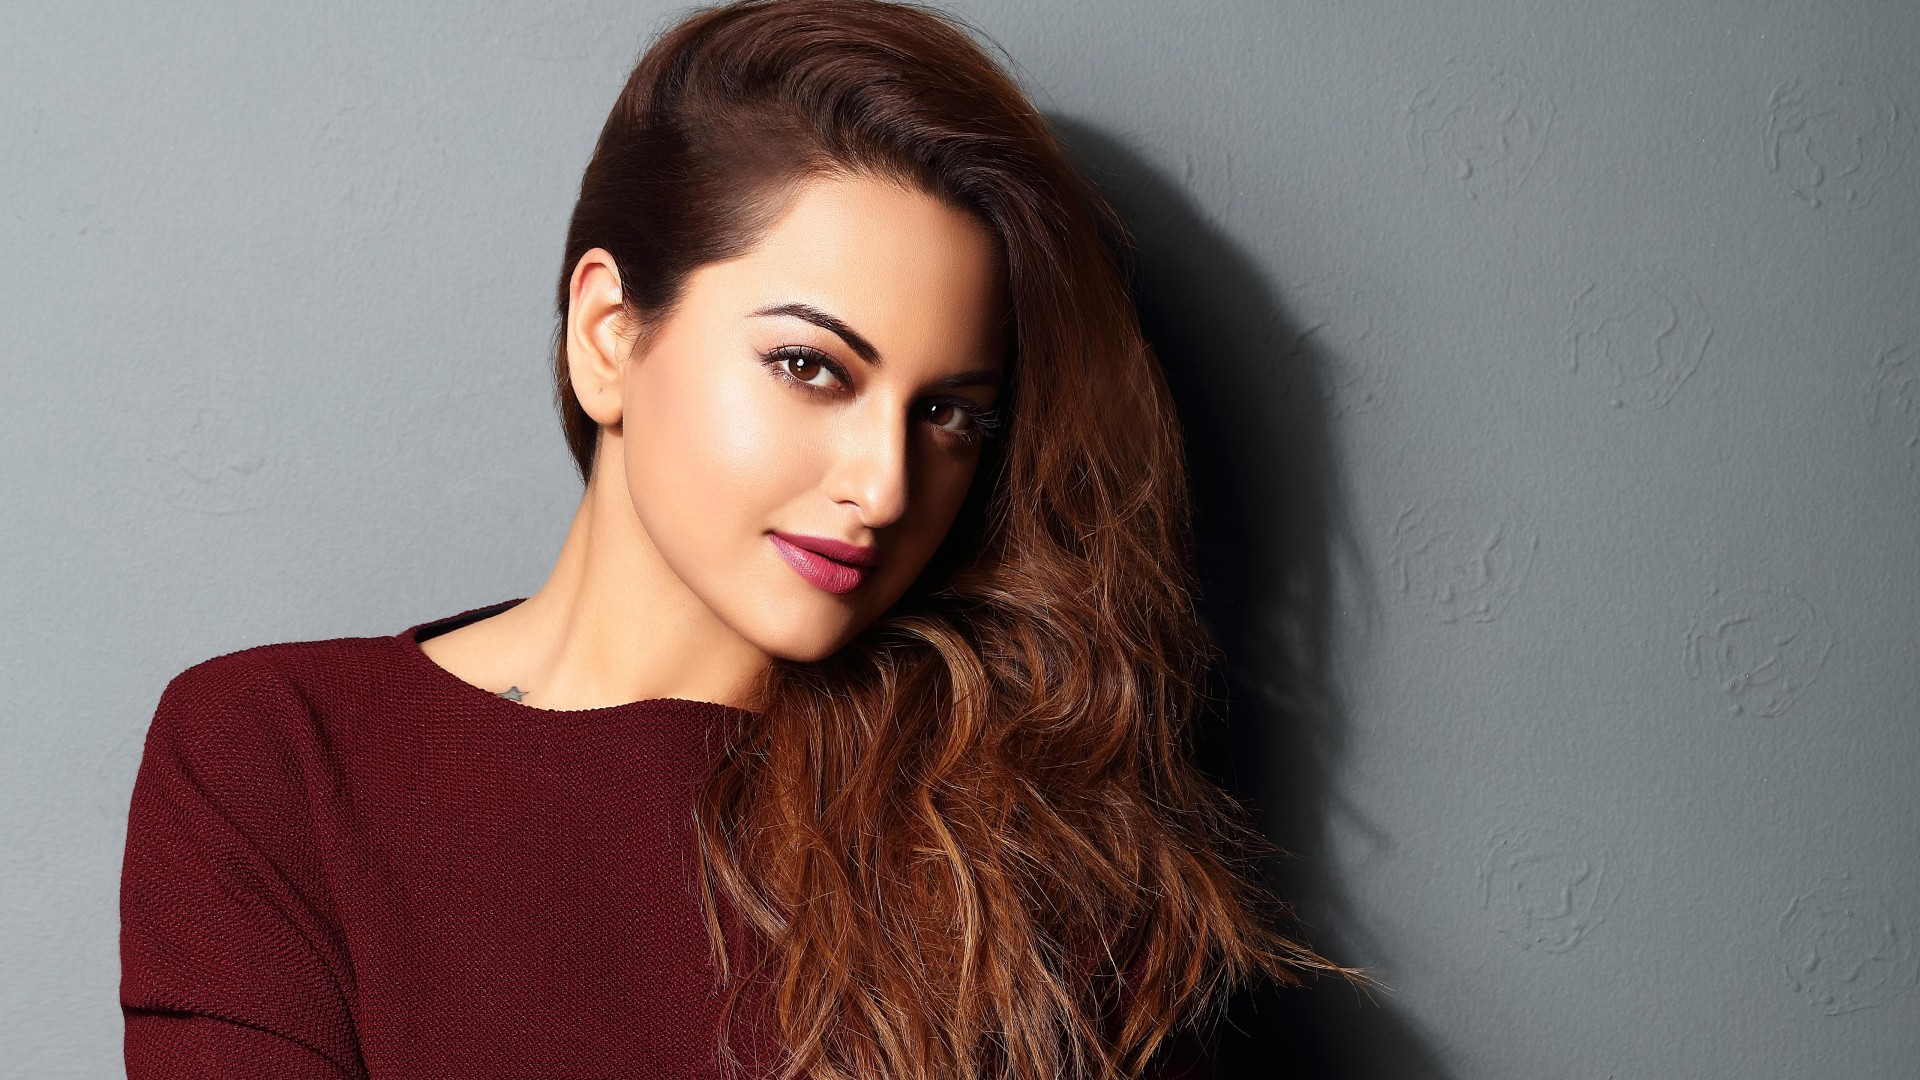 Sonakshi Sinha Photos HD Wallpapers For Your Desktop